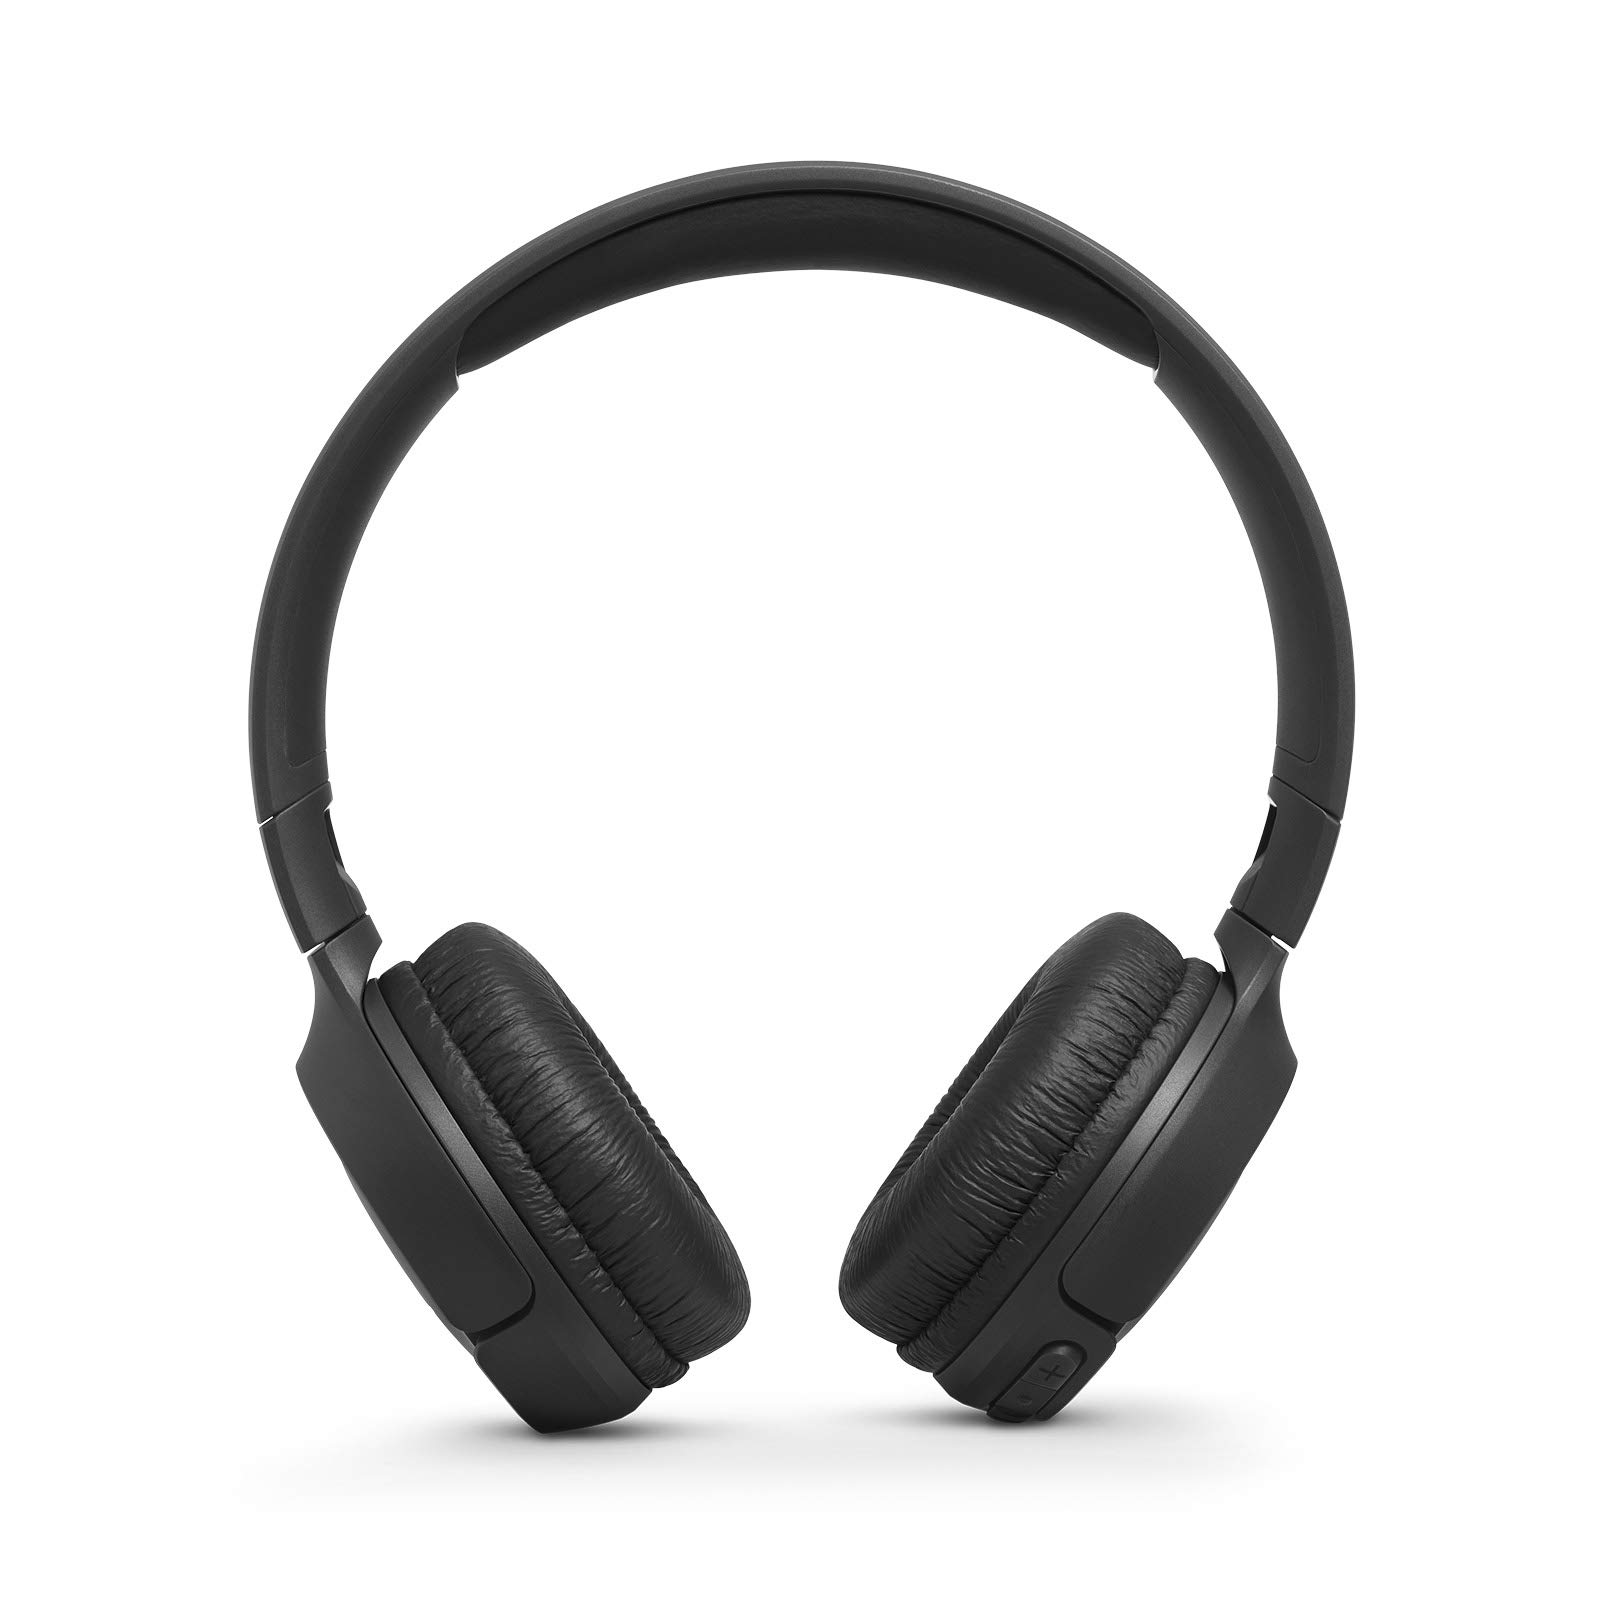 JBL JBLT500BTBLKAM On-Ear, Wireless Bluetooth Headphone, Black by JBL